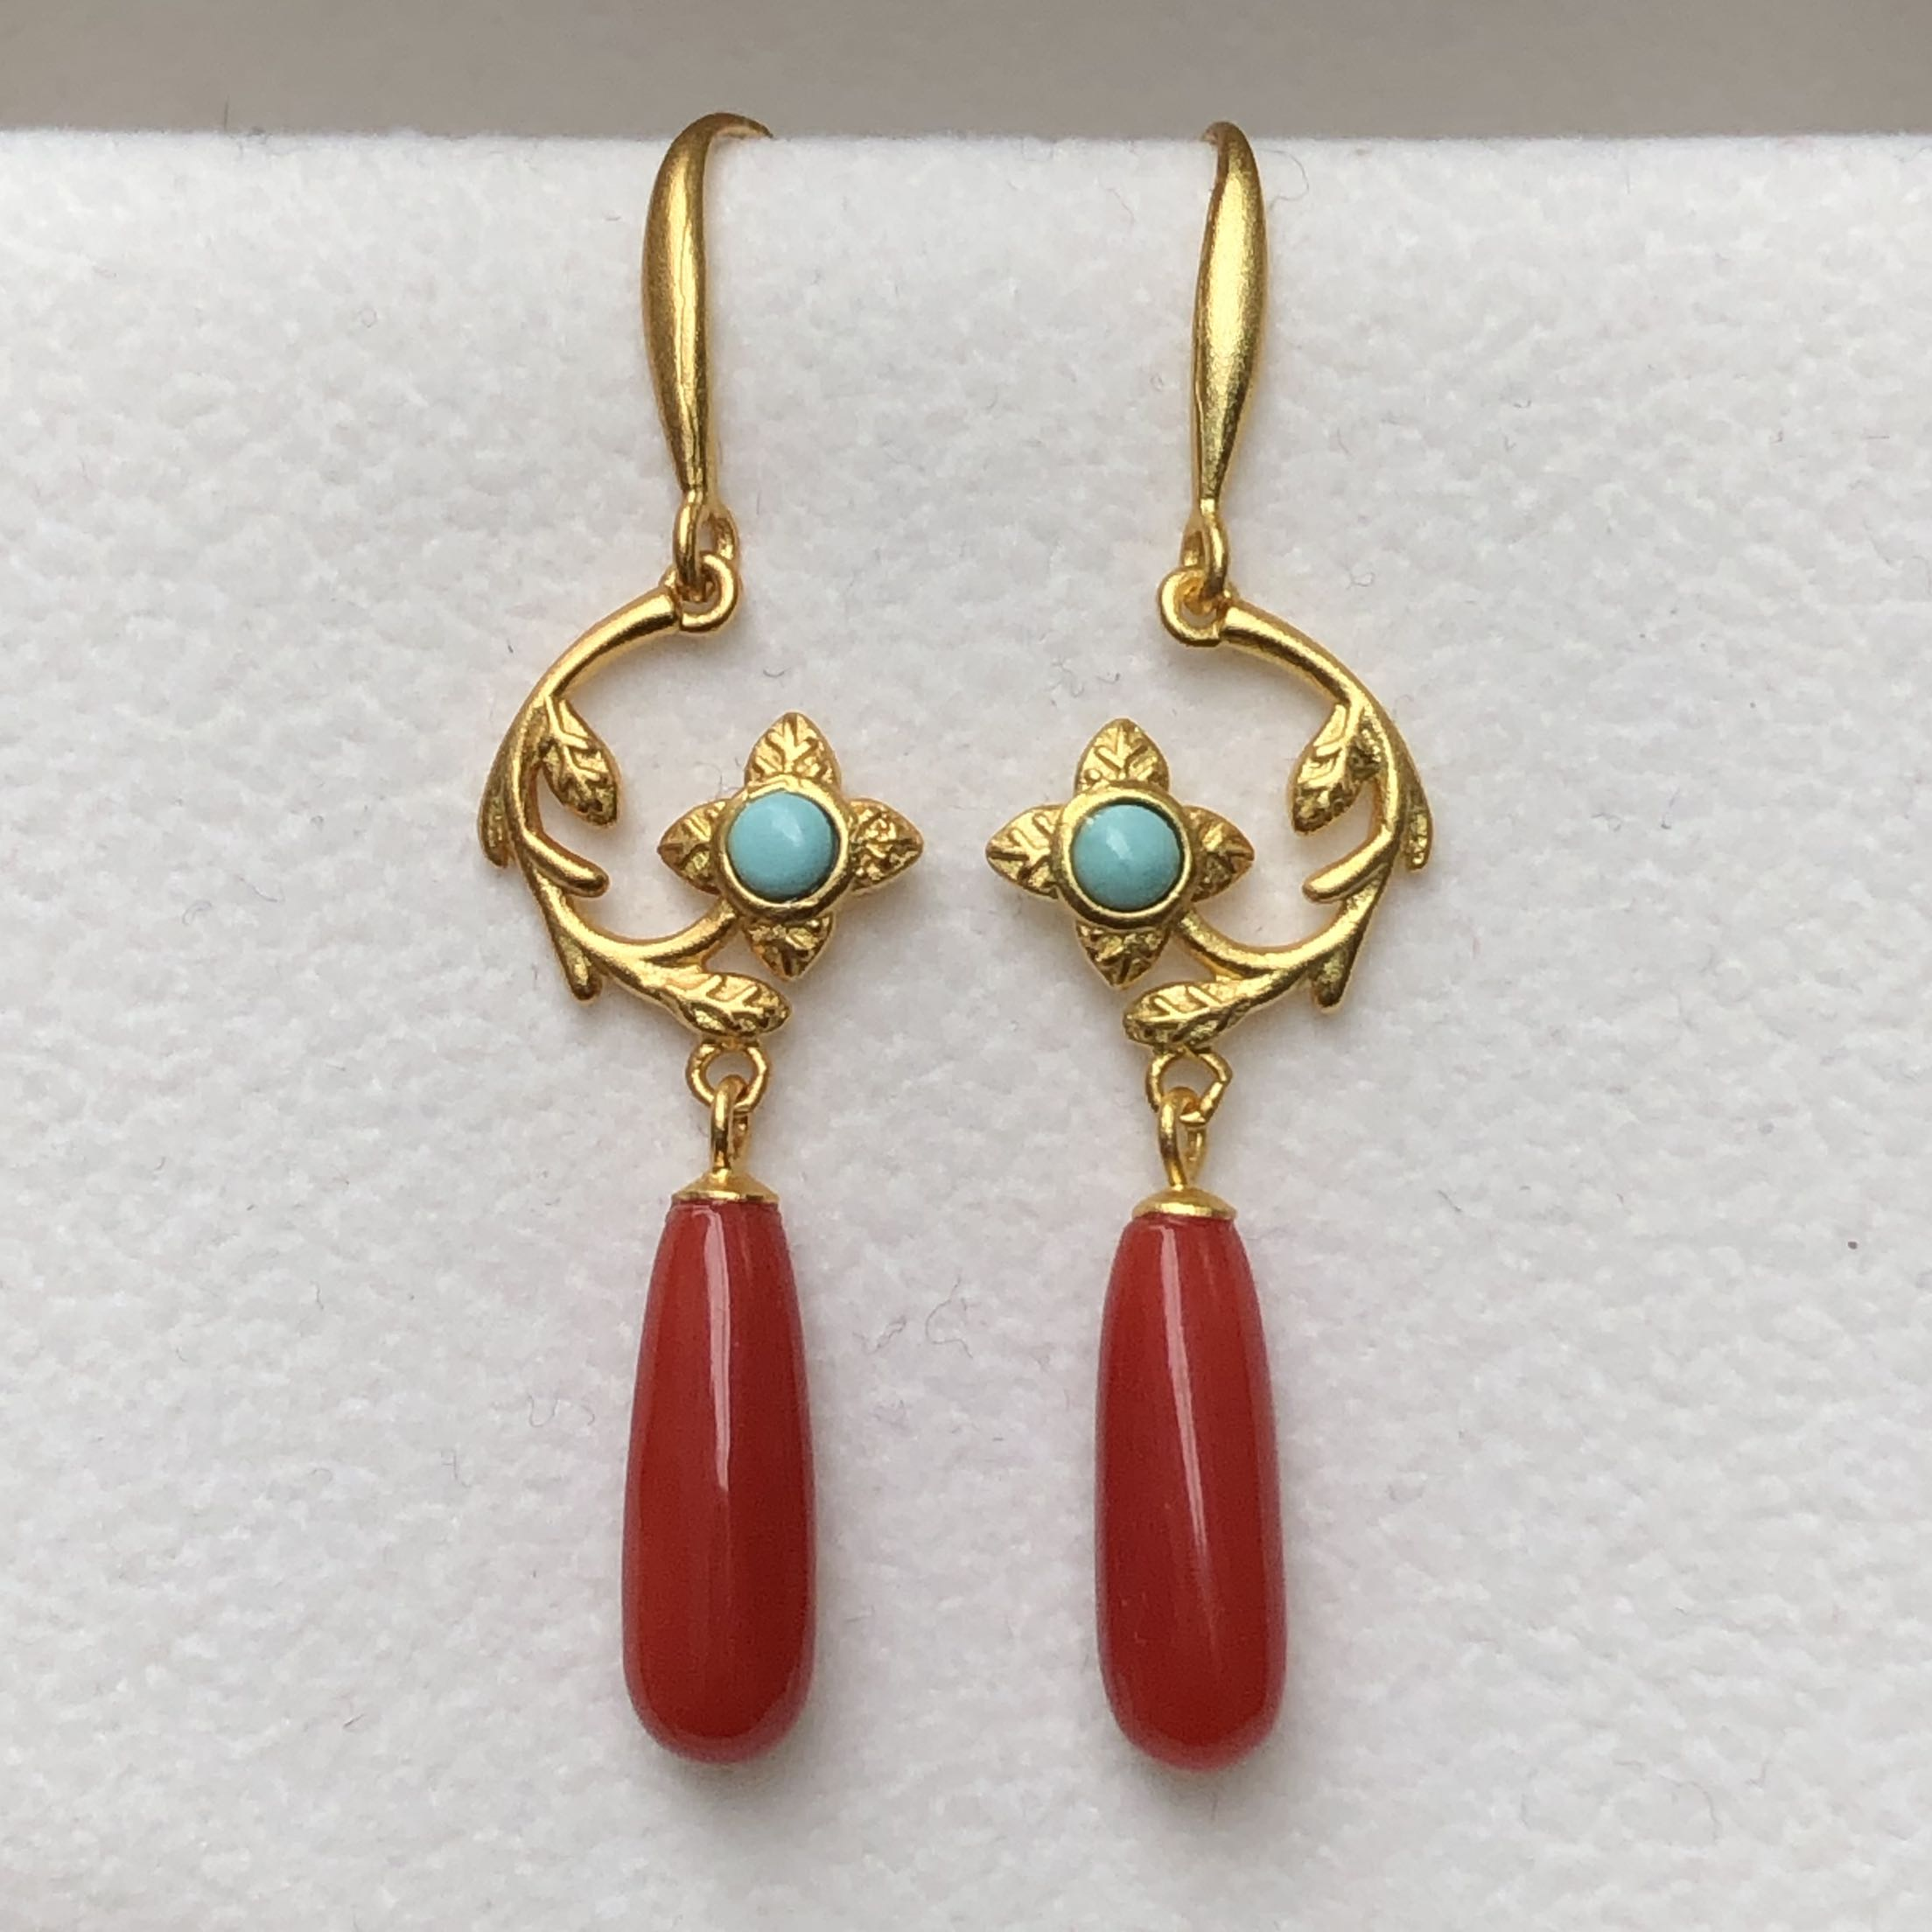 Organic Ruby earrings earrings earrings earrings ancient silver craft upper body super beautiful natural red